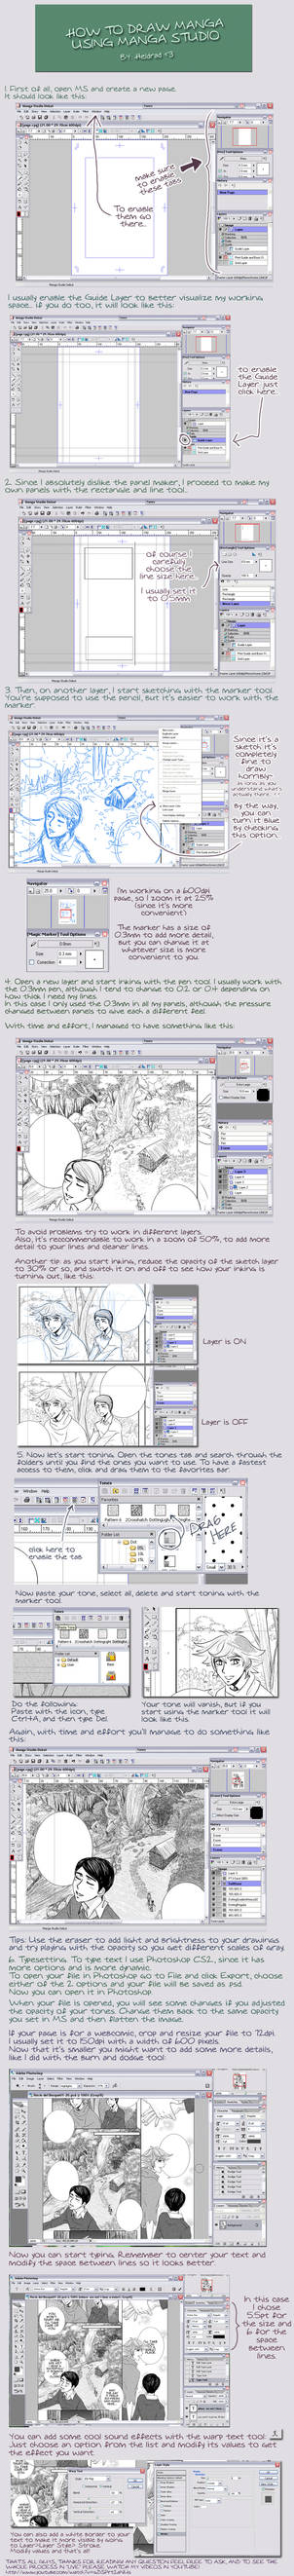 manga studio tutorial